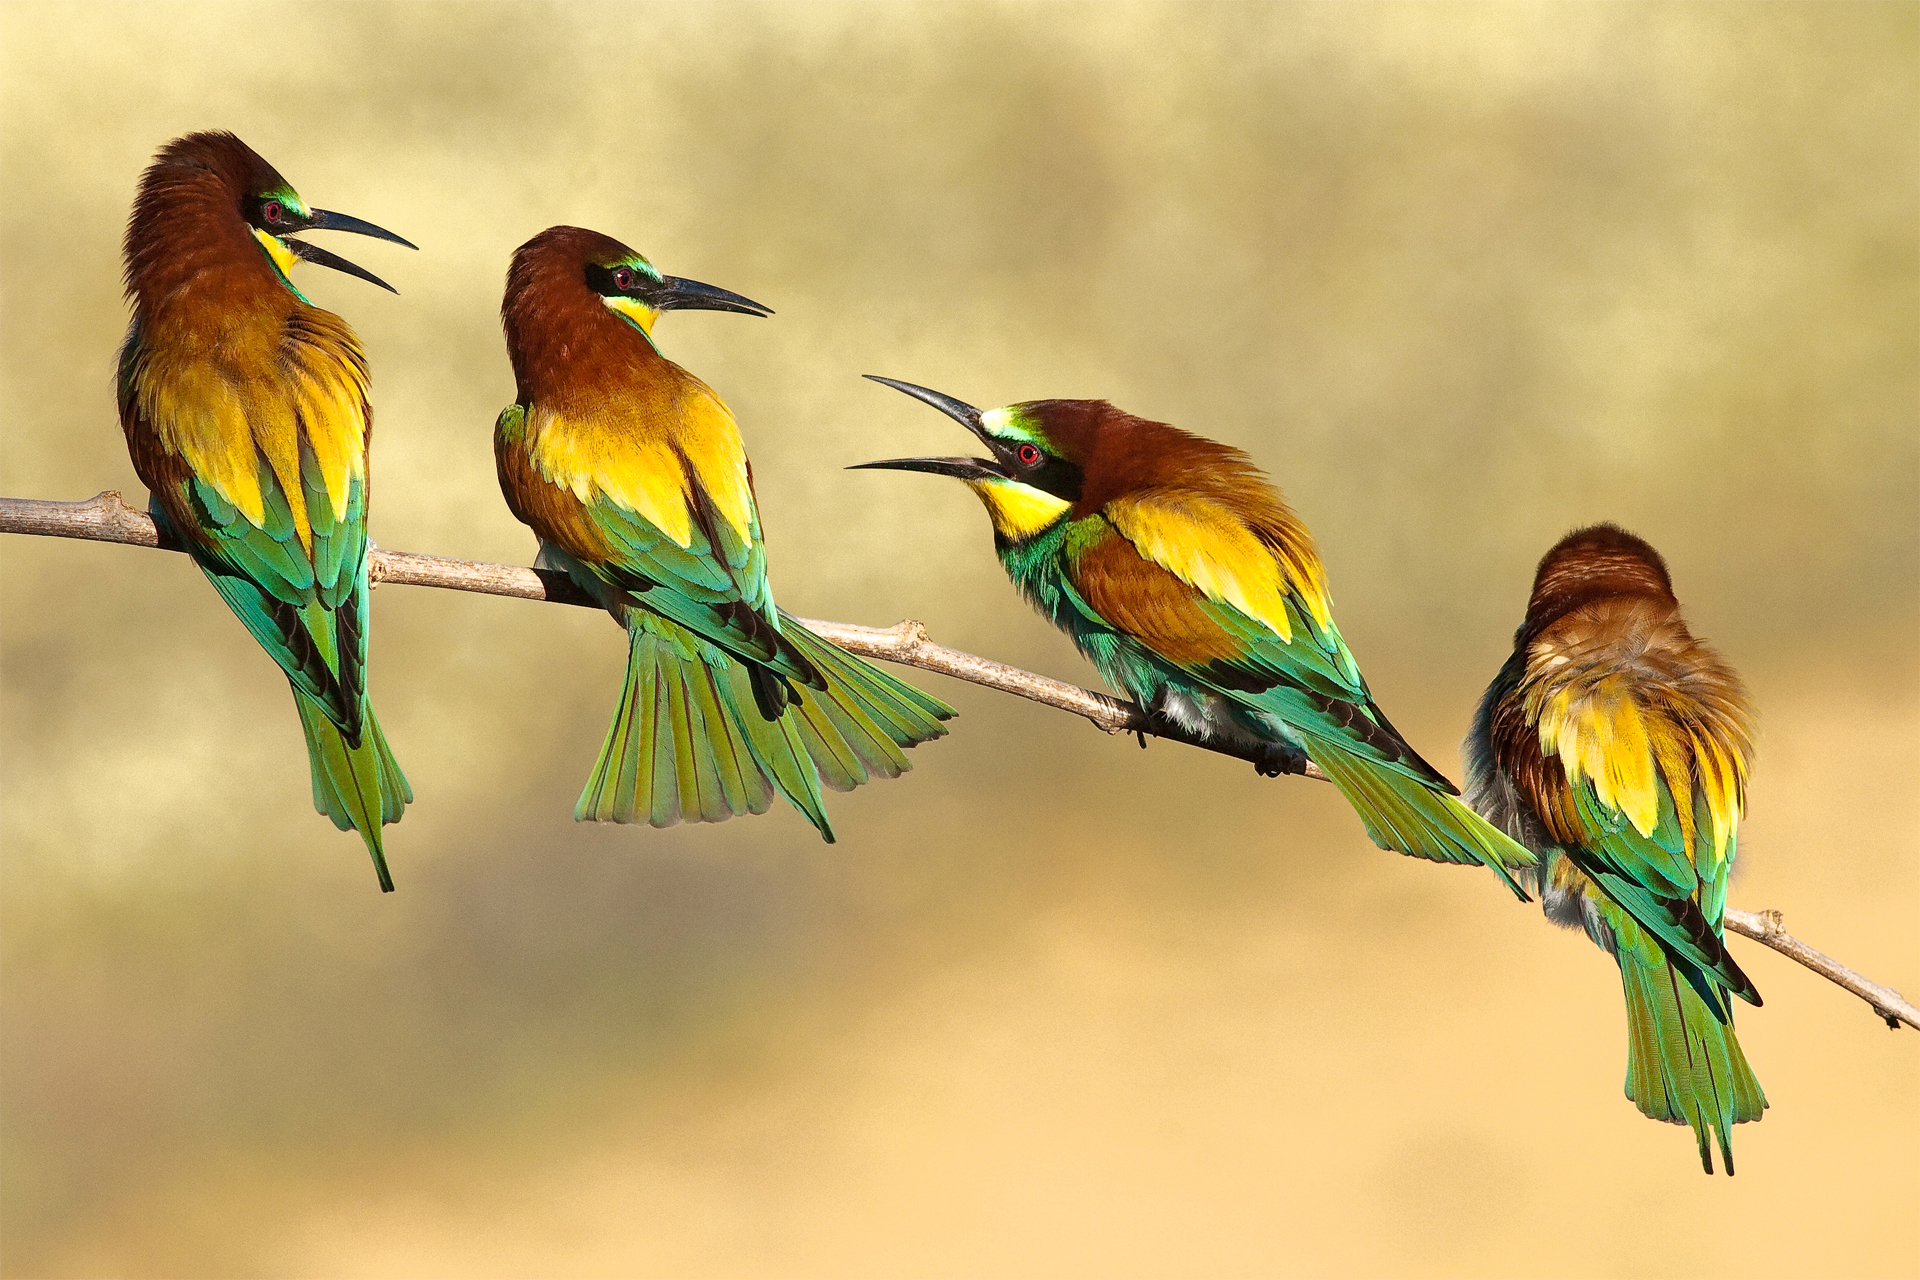 Sparrow hd wallpapers - Animal and bird hd wallpaper ...